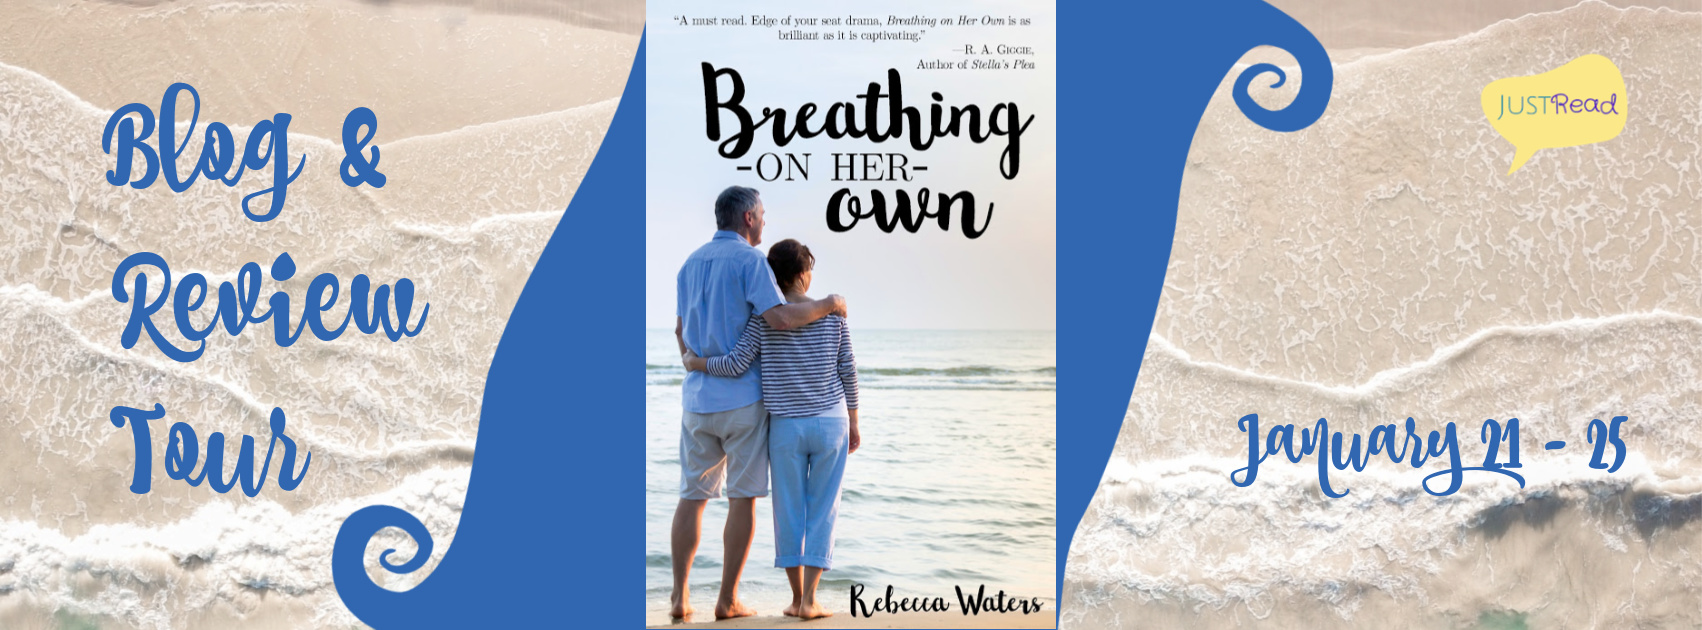 Welcome to the Breathing on Her Own Blog Tour & Giveaway!